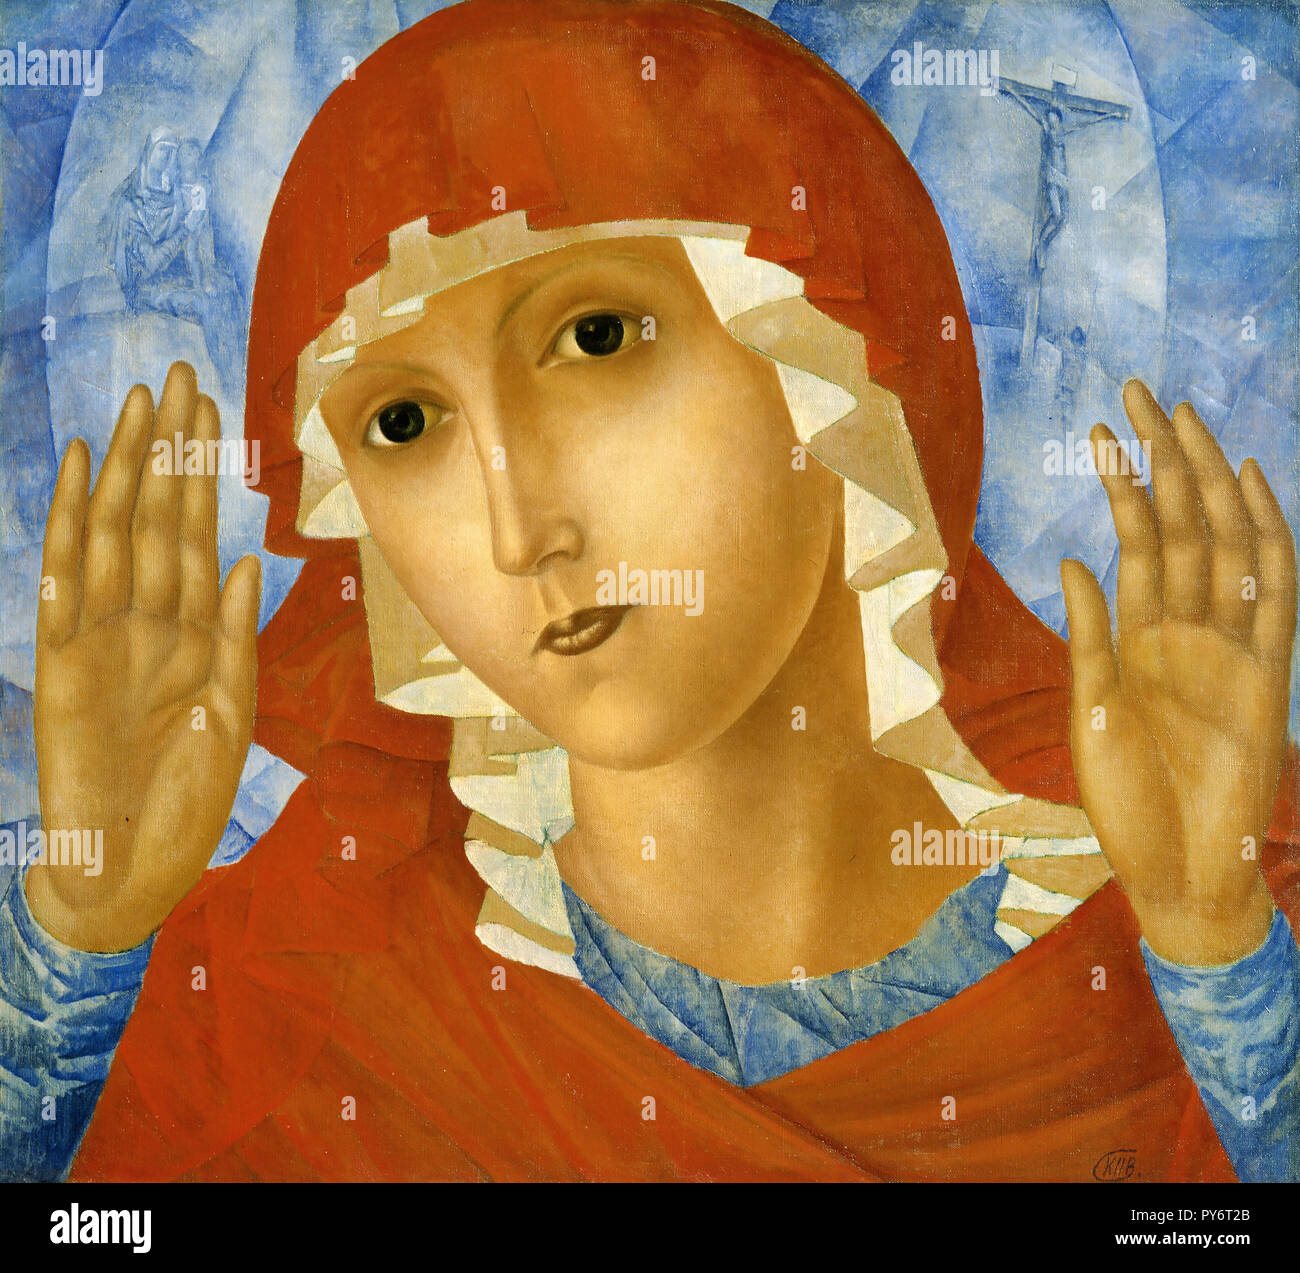 Kuzma Petrov-Vodkin, The Mother of God of Tenderness Towards Evil Hearts 1914 Oil on canvas, Russian Museum, Saint Petersburg, Russia. - Stock Image